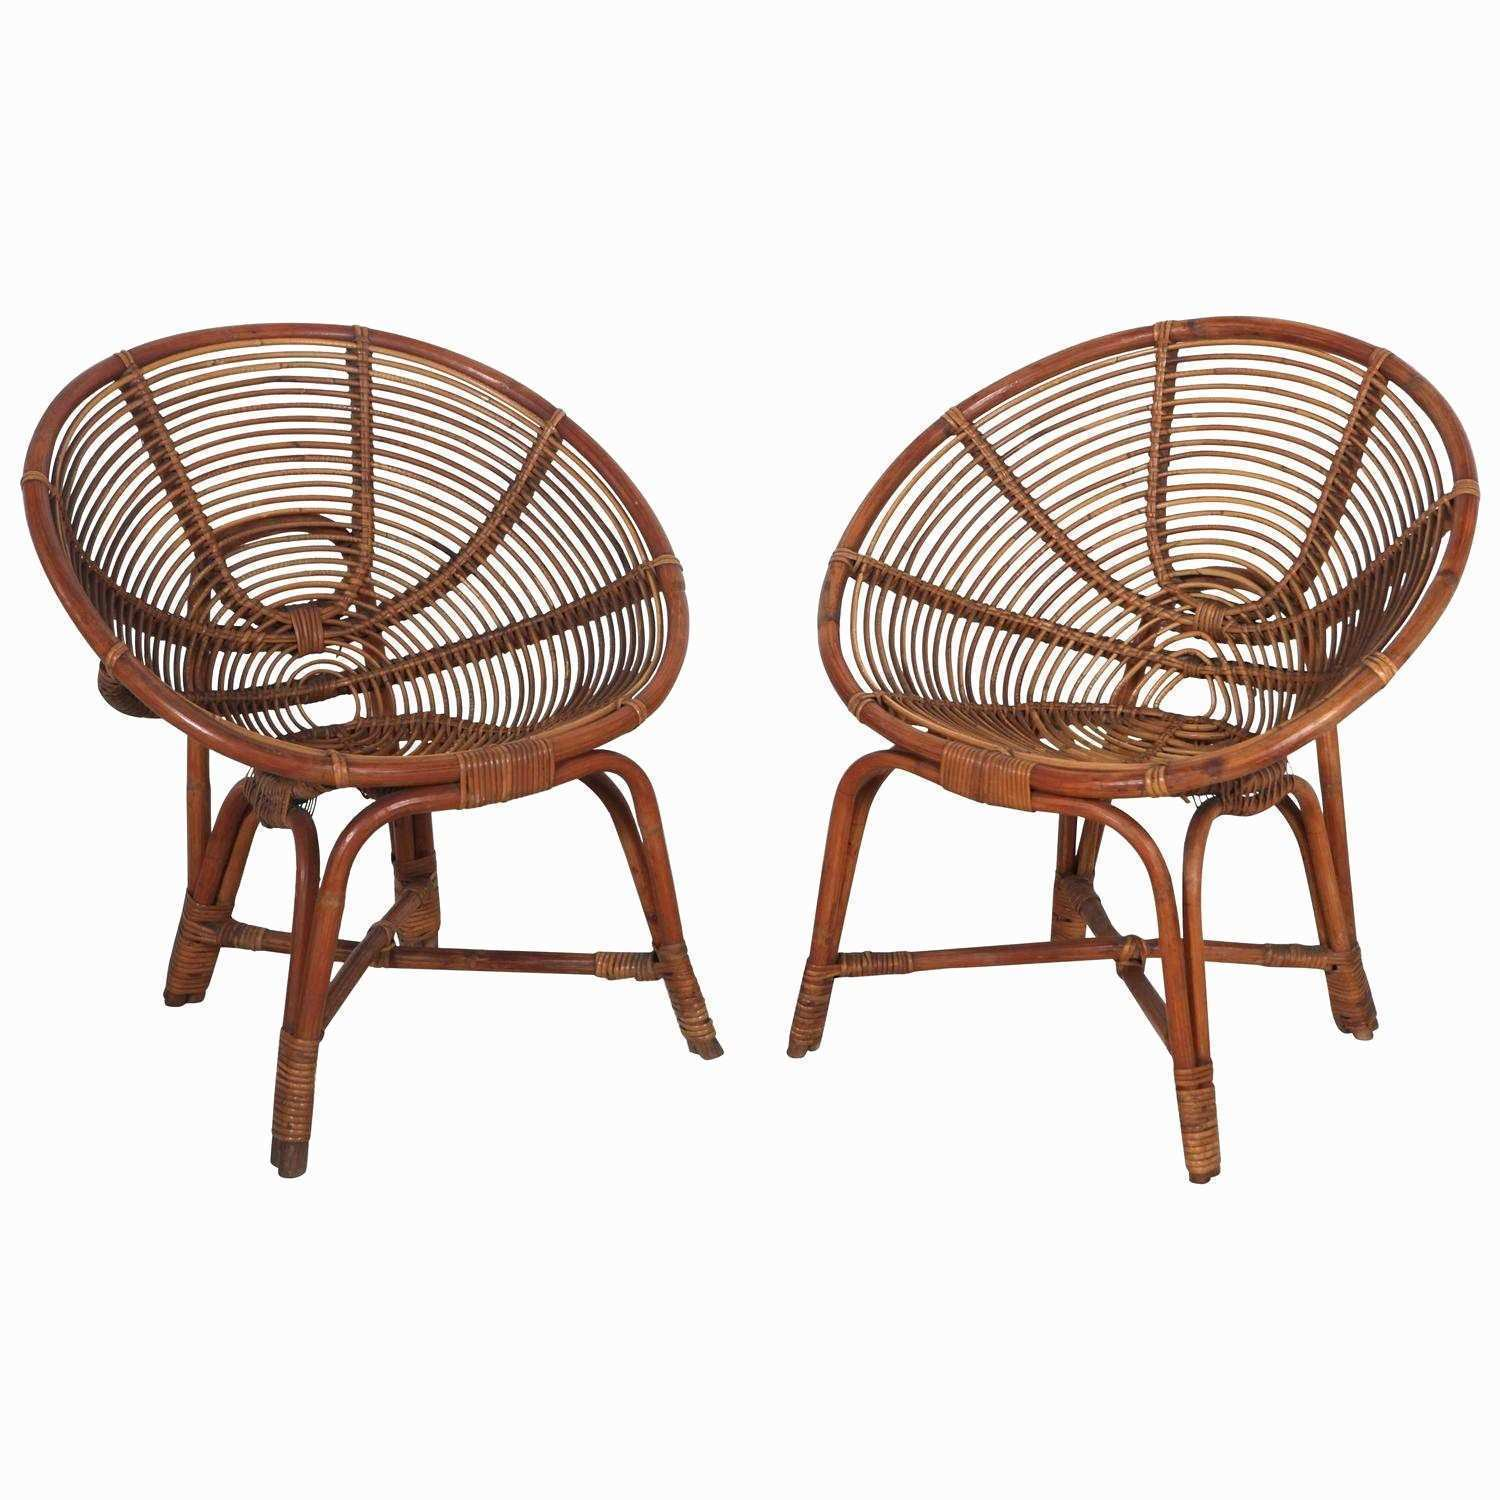 Italian Wallpaper Beautiful Stackable Outdoor Chairs Design Patios